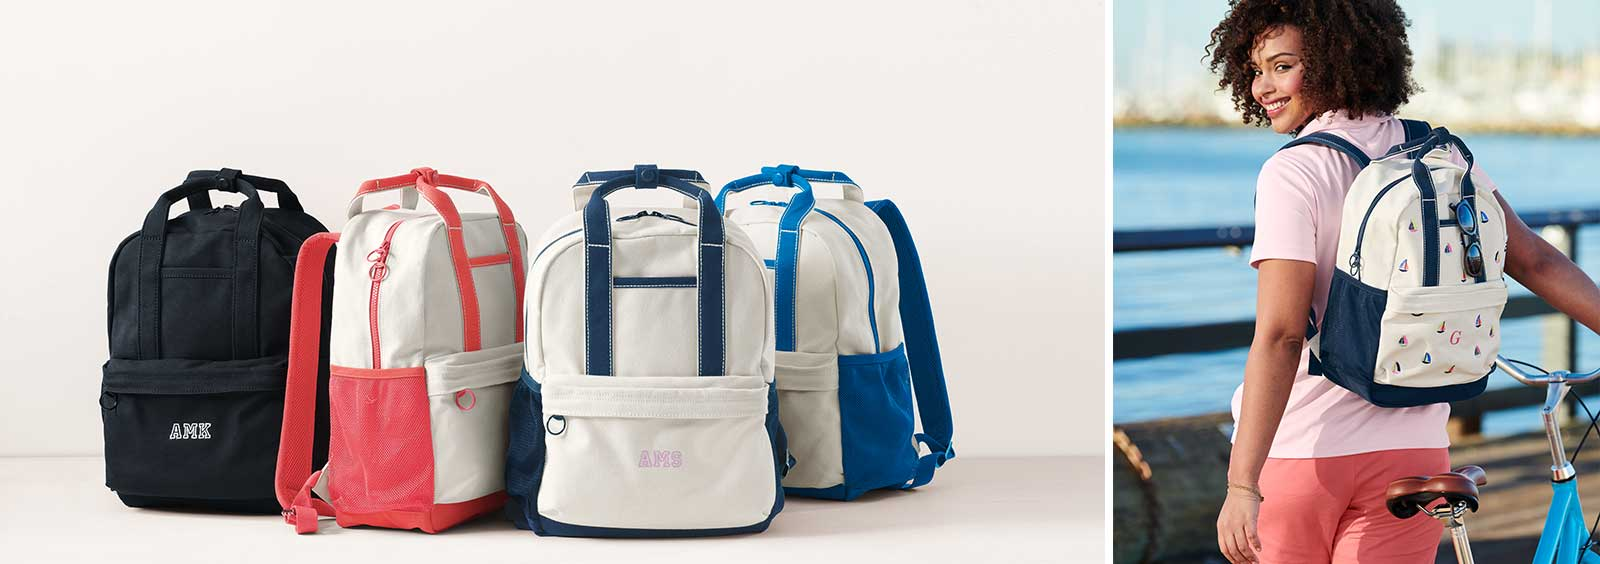 Why Backpacks Make The Best Carry-On Bags For Travel